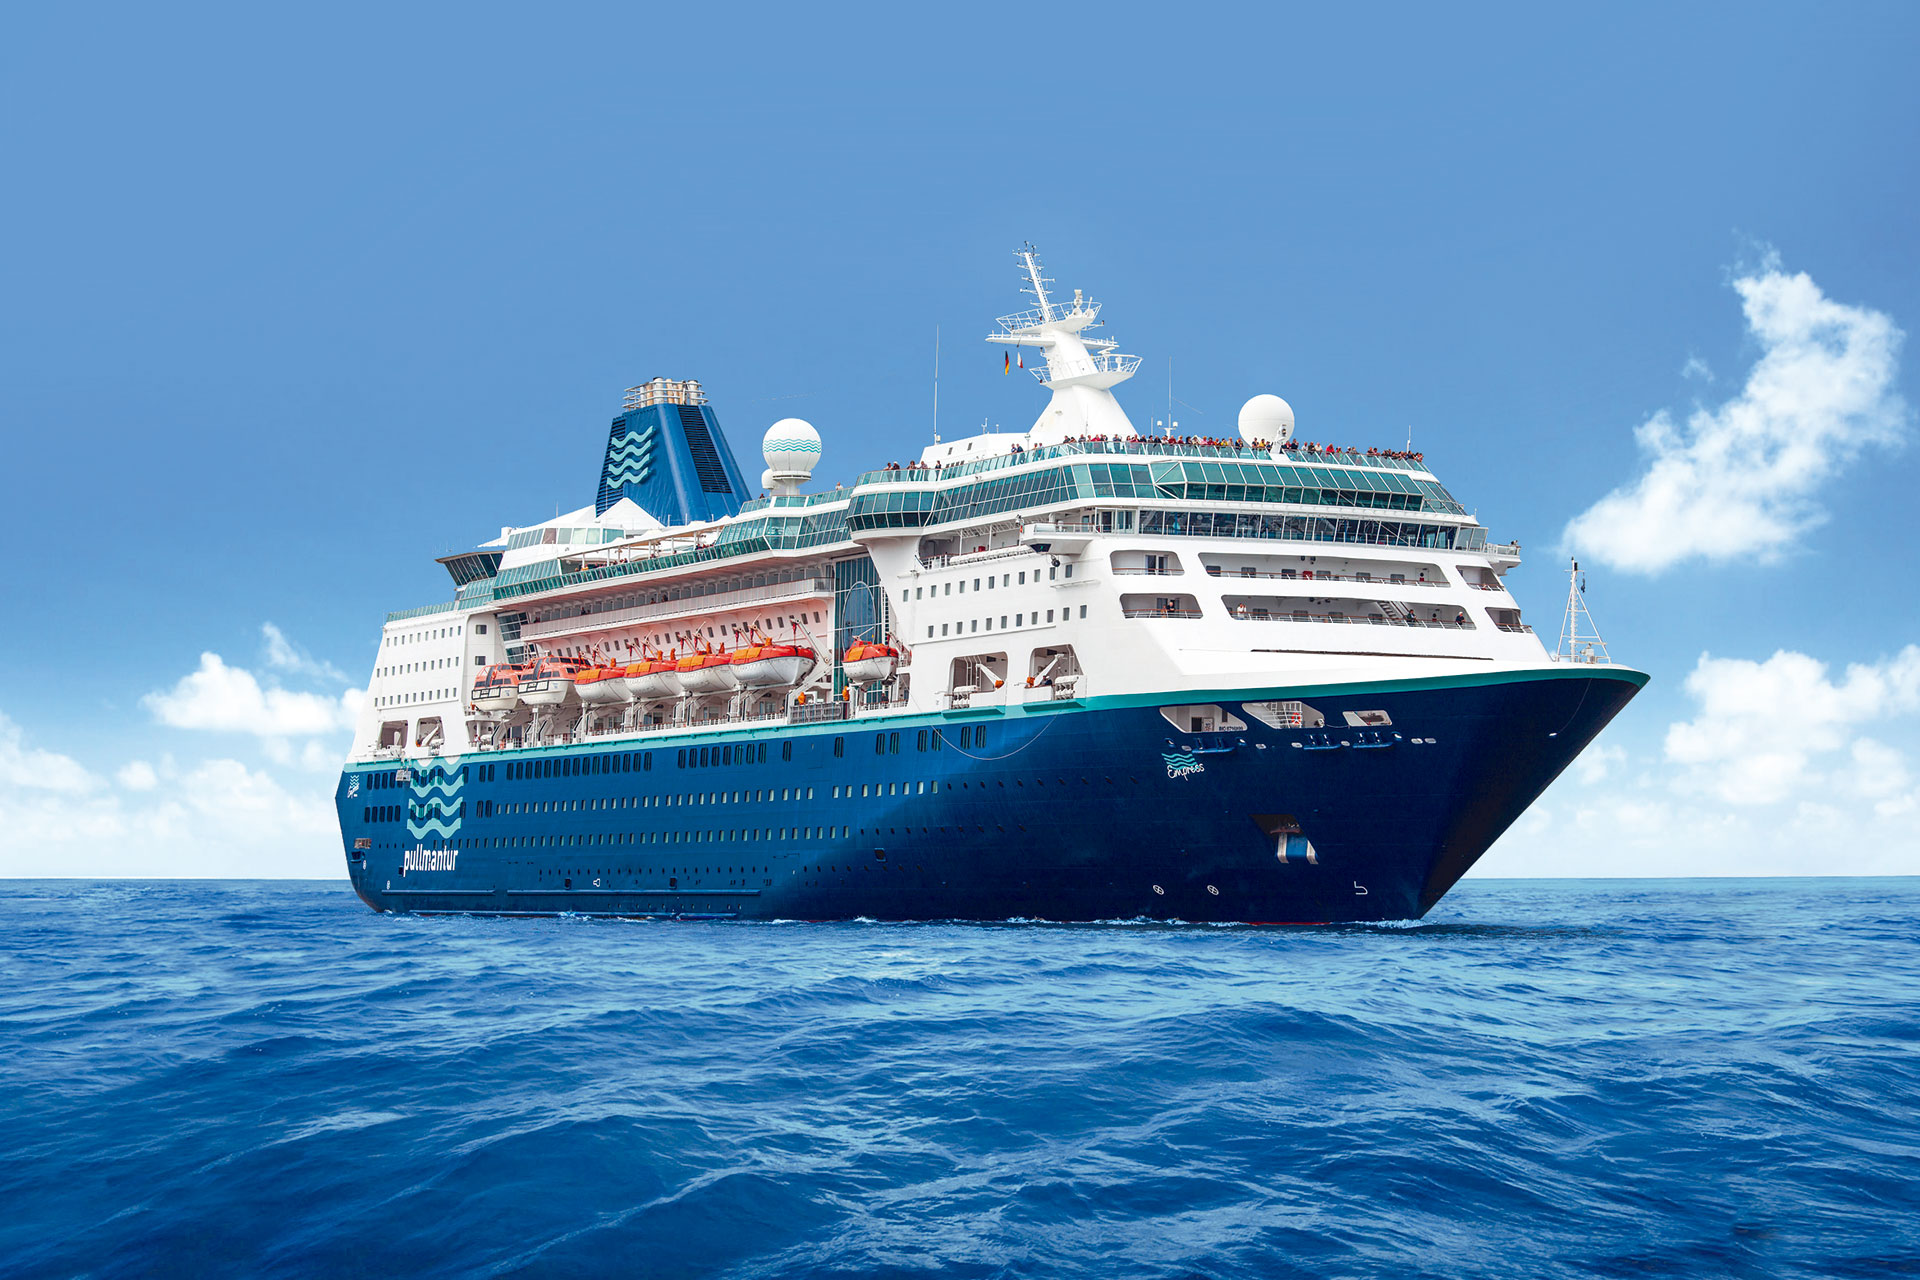 Pullmantur Targets British Cruise Market World Of Cruising Magazine - Zenith cruise ship itinerary